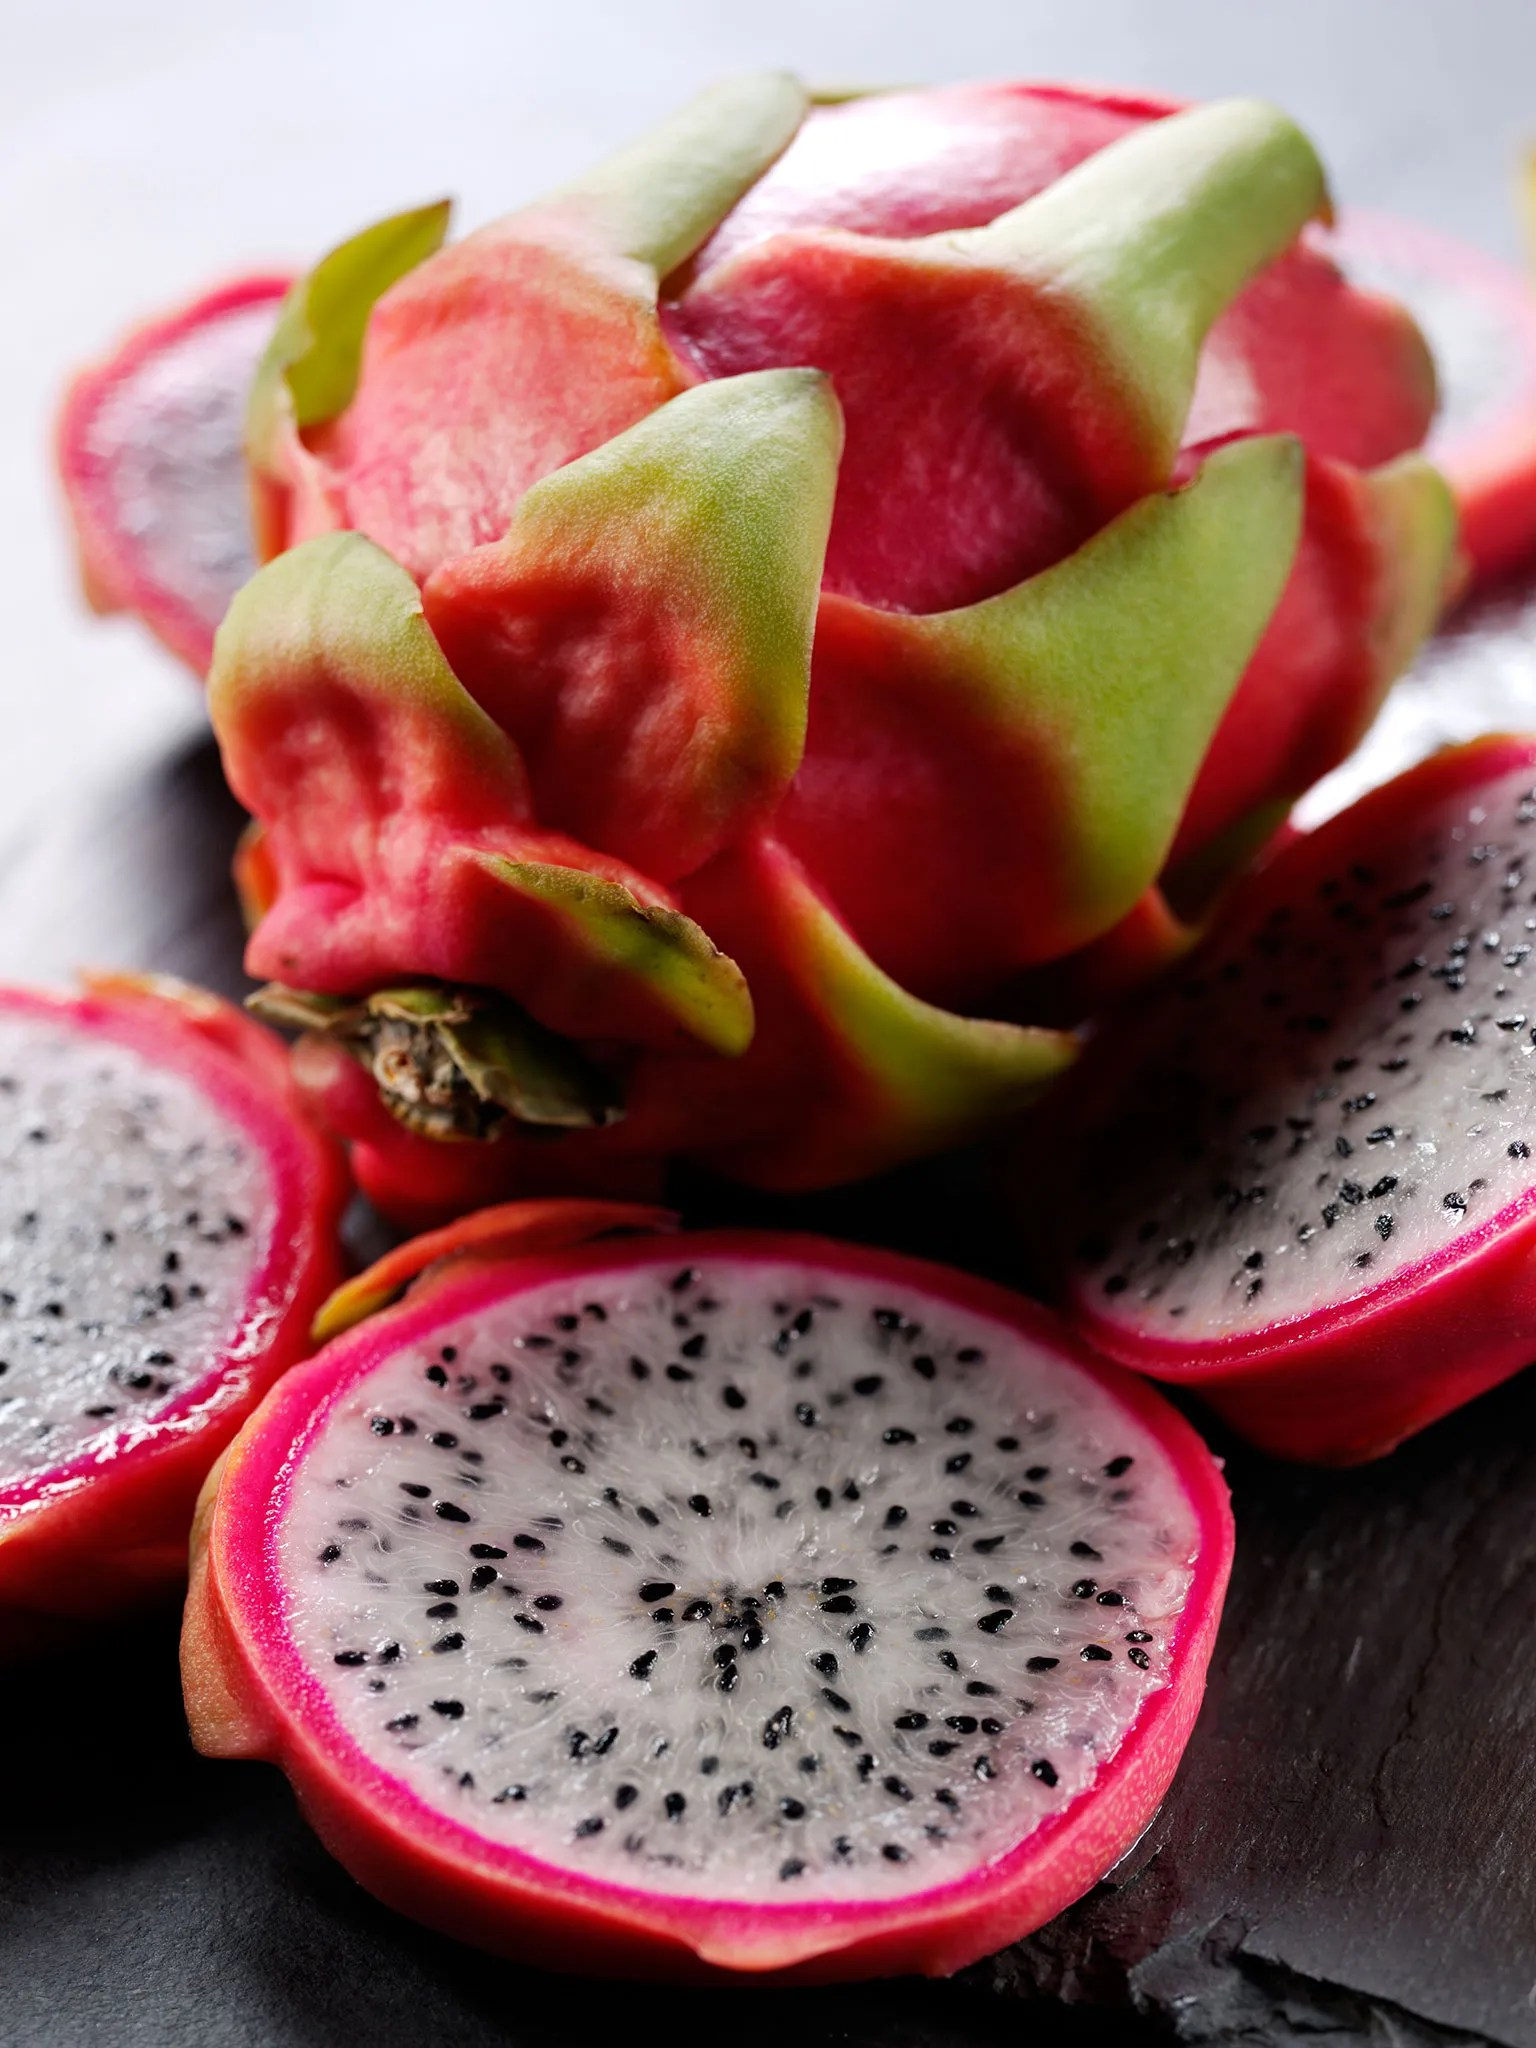 Fruits That Aren T Round : fruits, round, Unusual, Fruits, Can't, Condé, Traveler